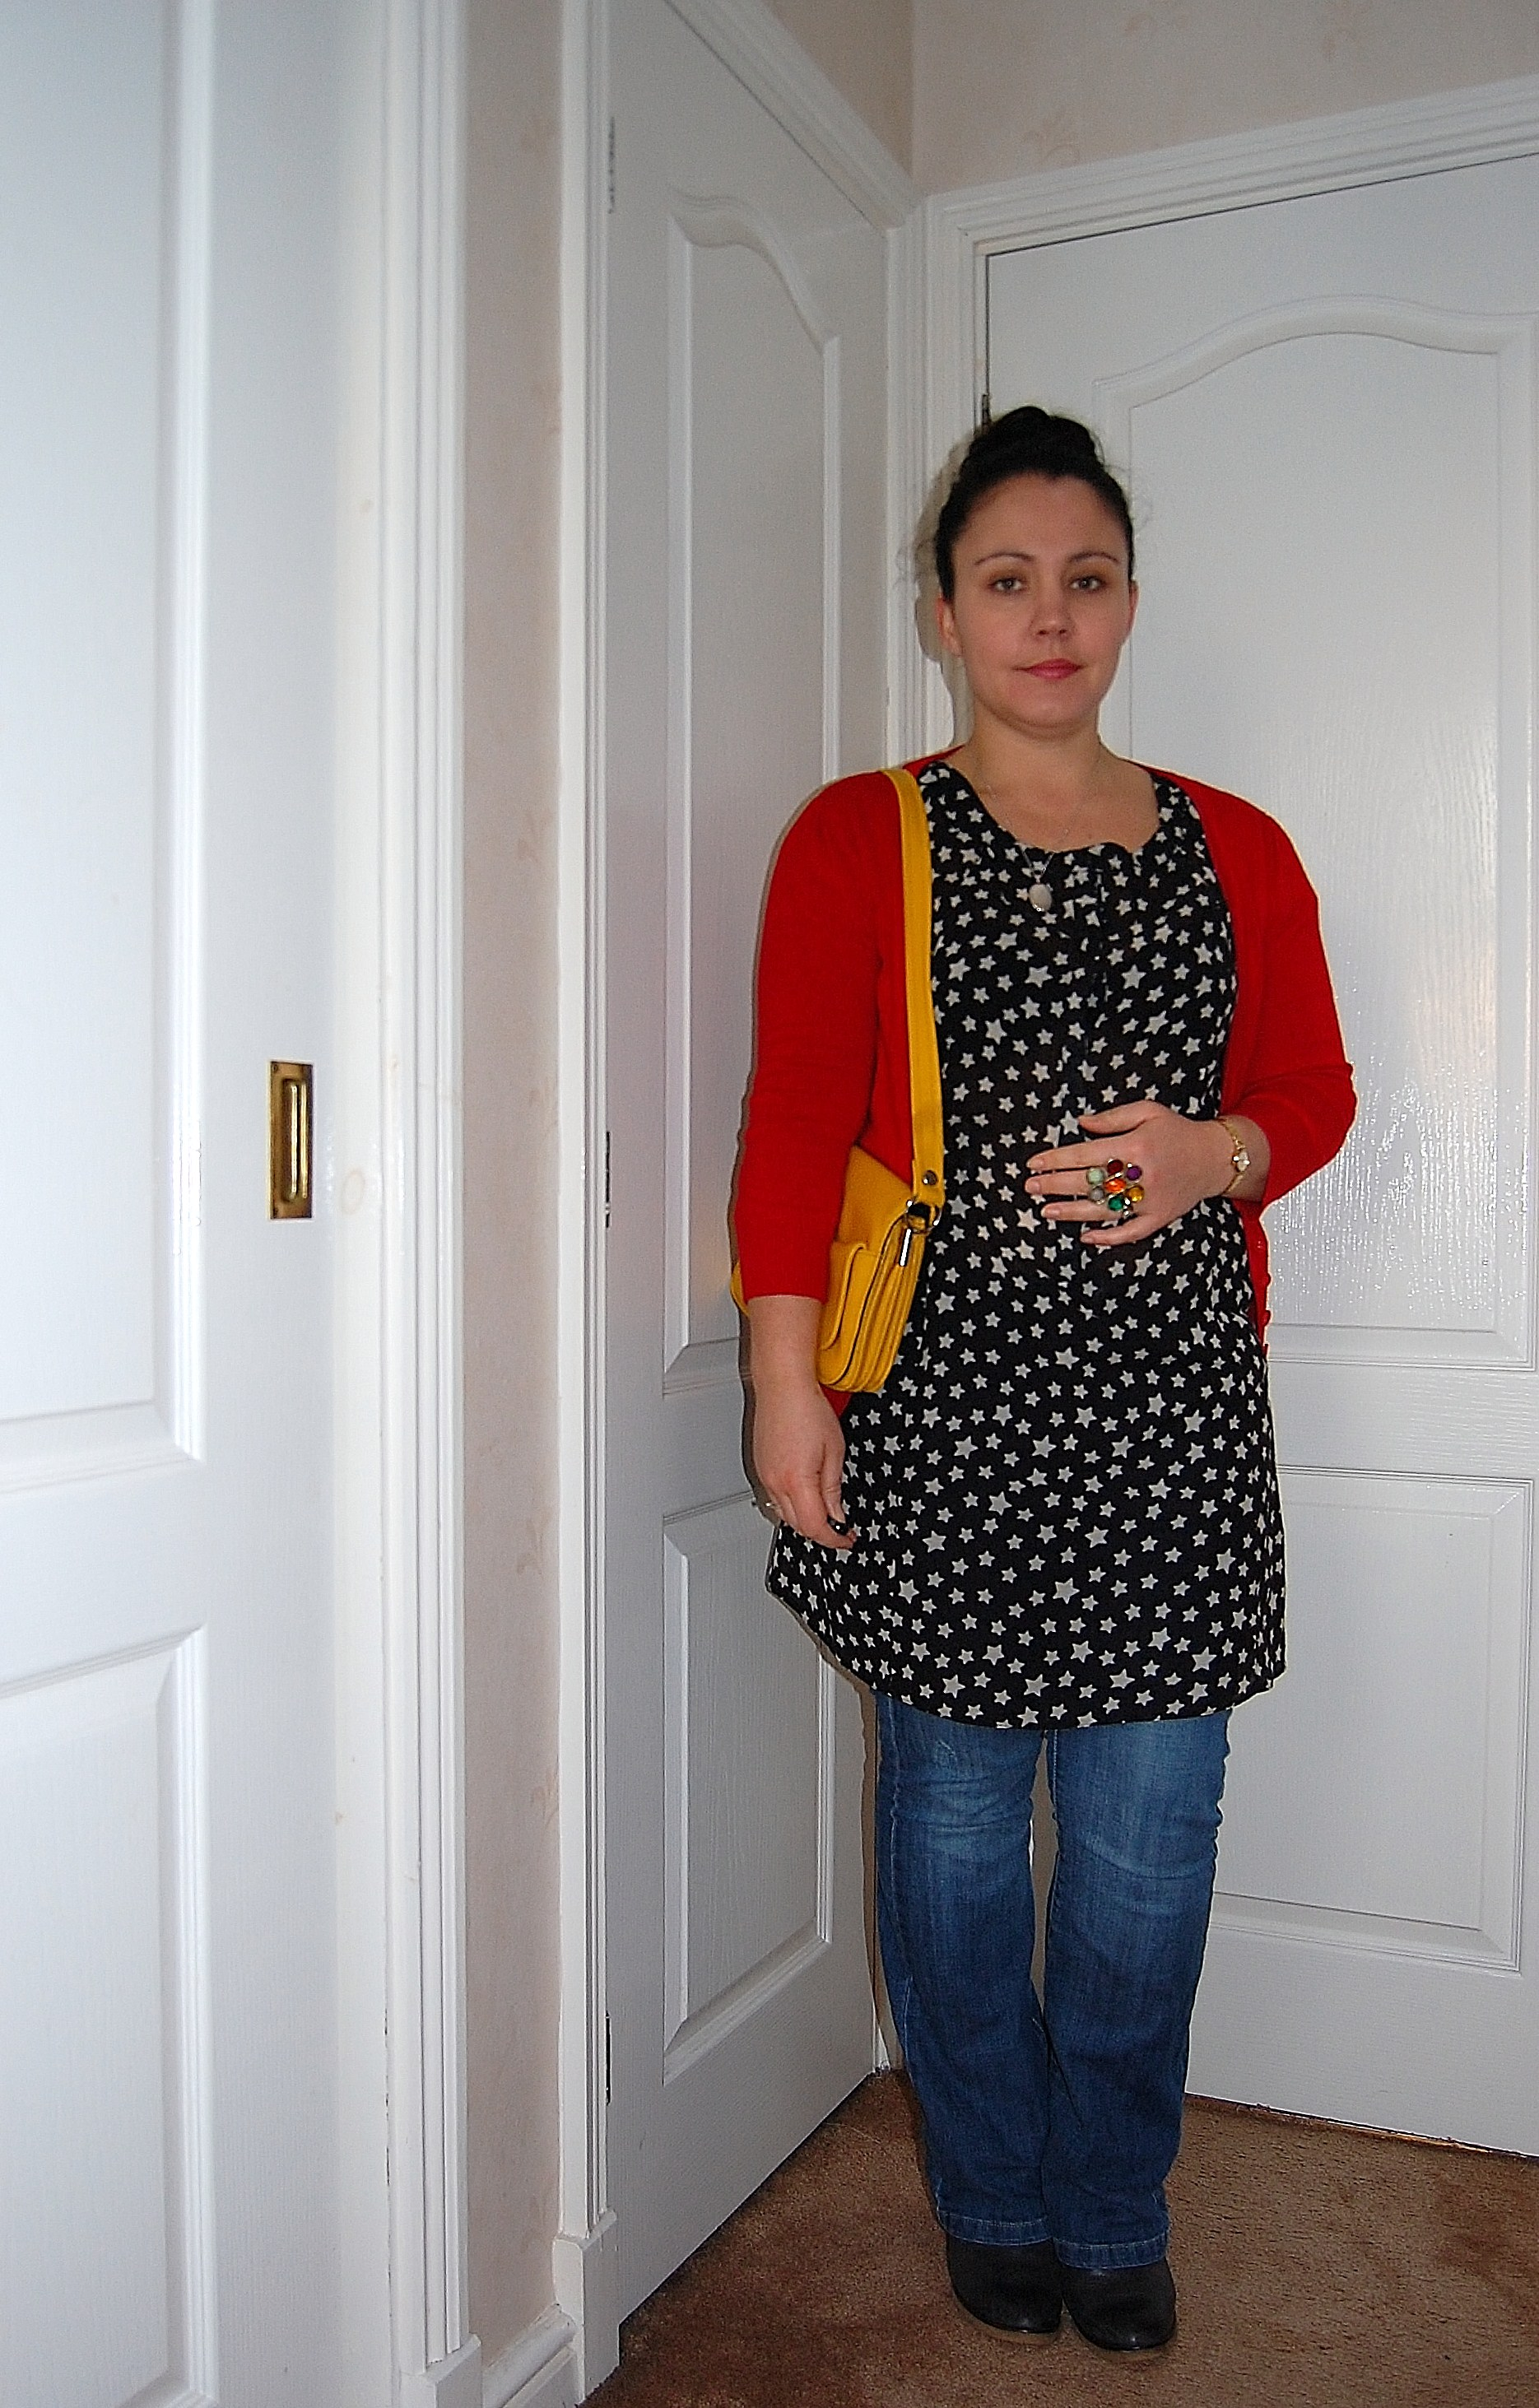 009 Charity Shop Outfit and a Night Out in Cardiff